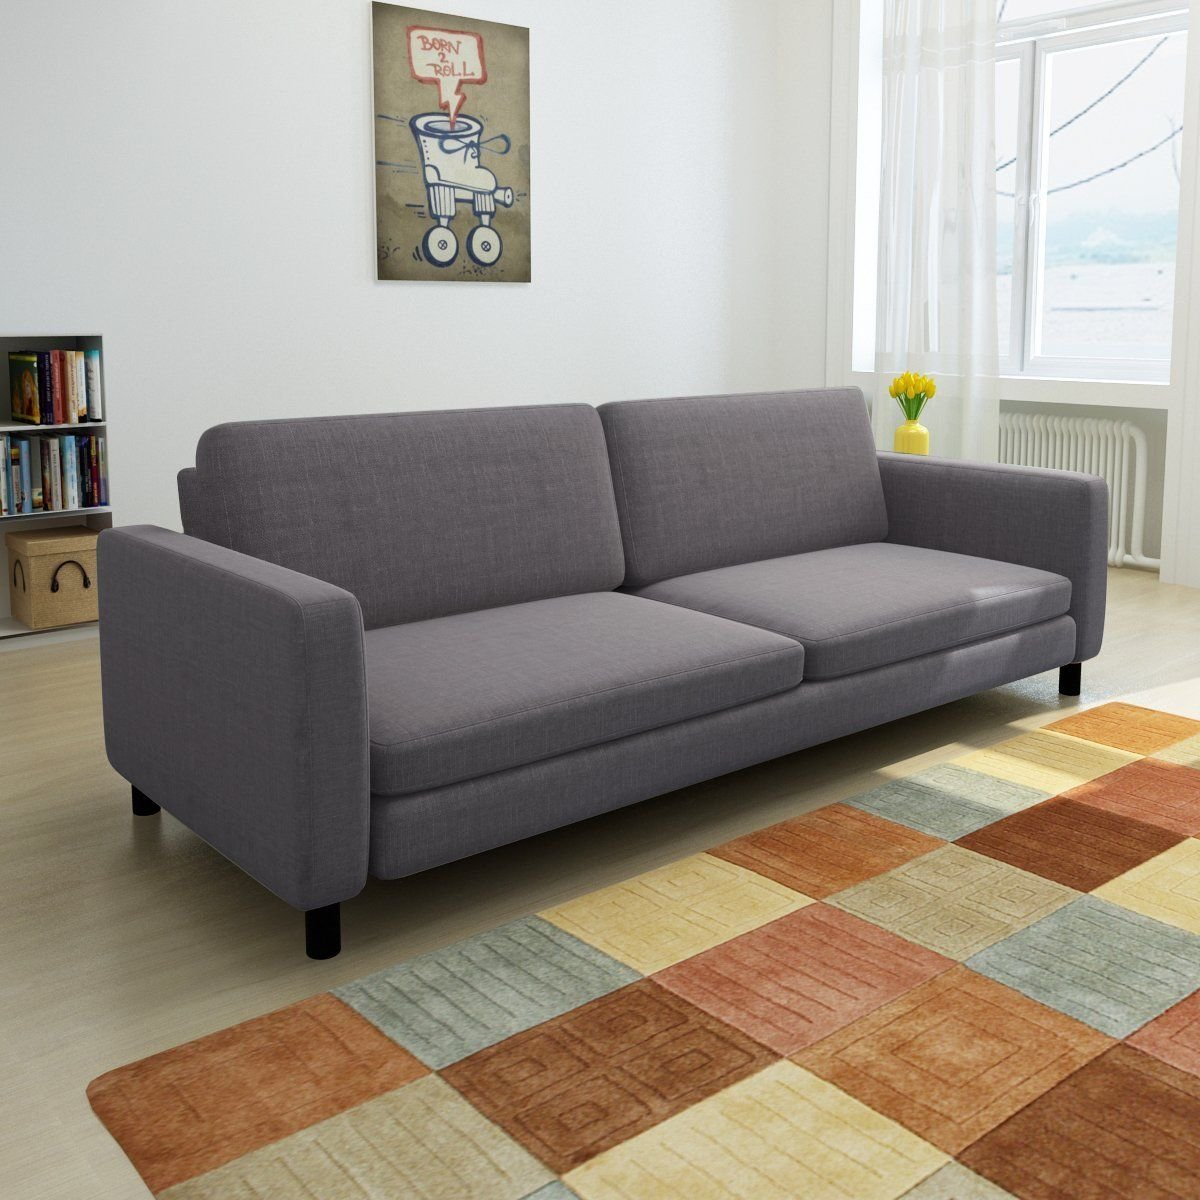 Modern Fabric Upholstry Sofa Couch, 3 Seat, Living Room Furniture Decor, Gray